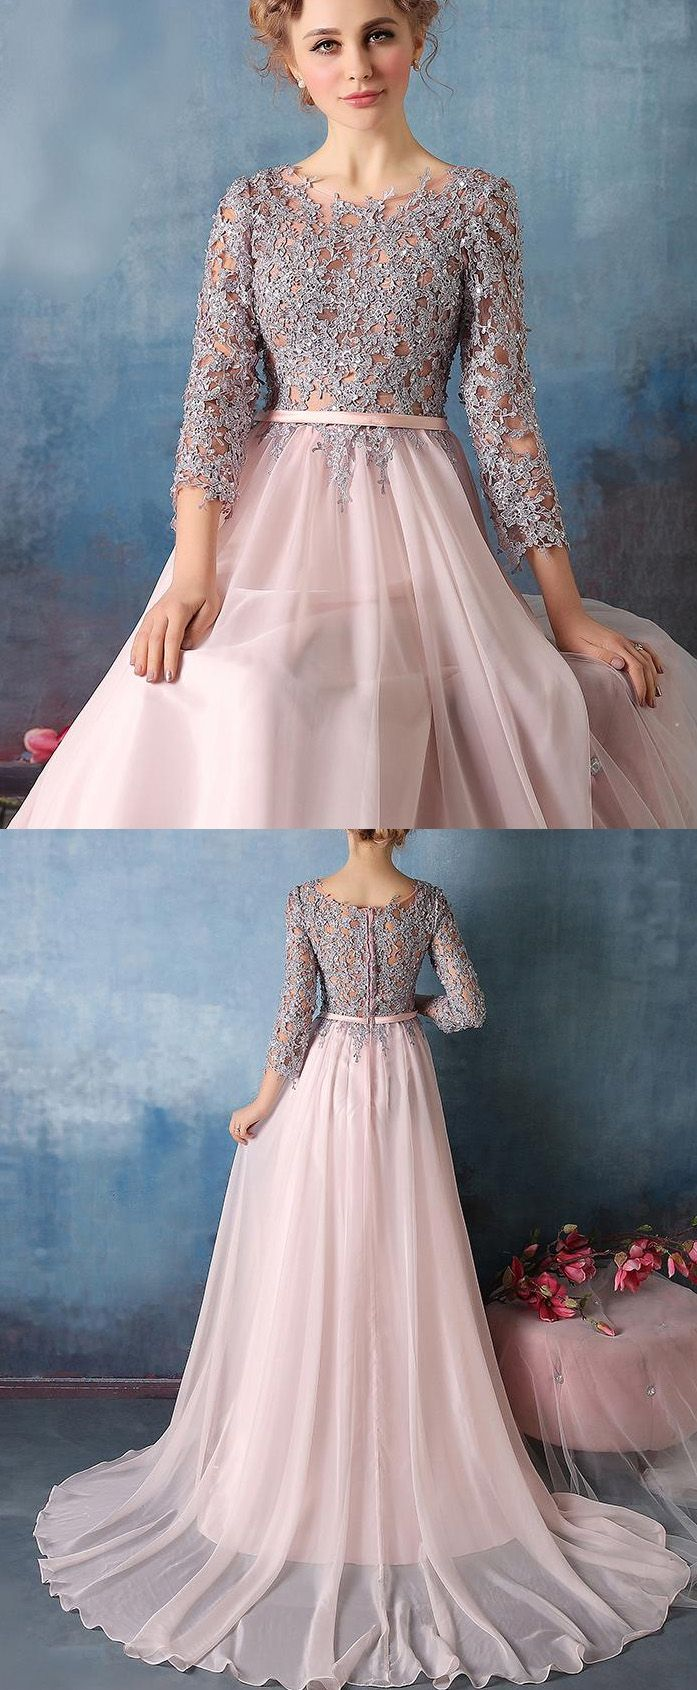 Applique evening dresses pink alineprincess evening dresses long